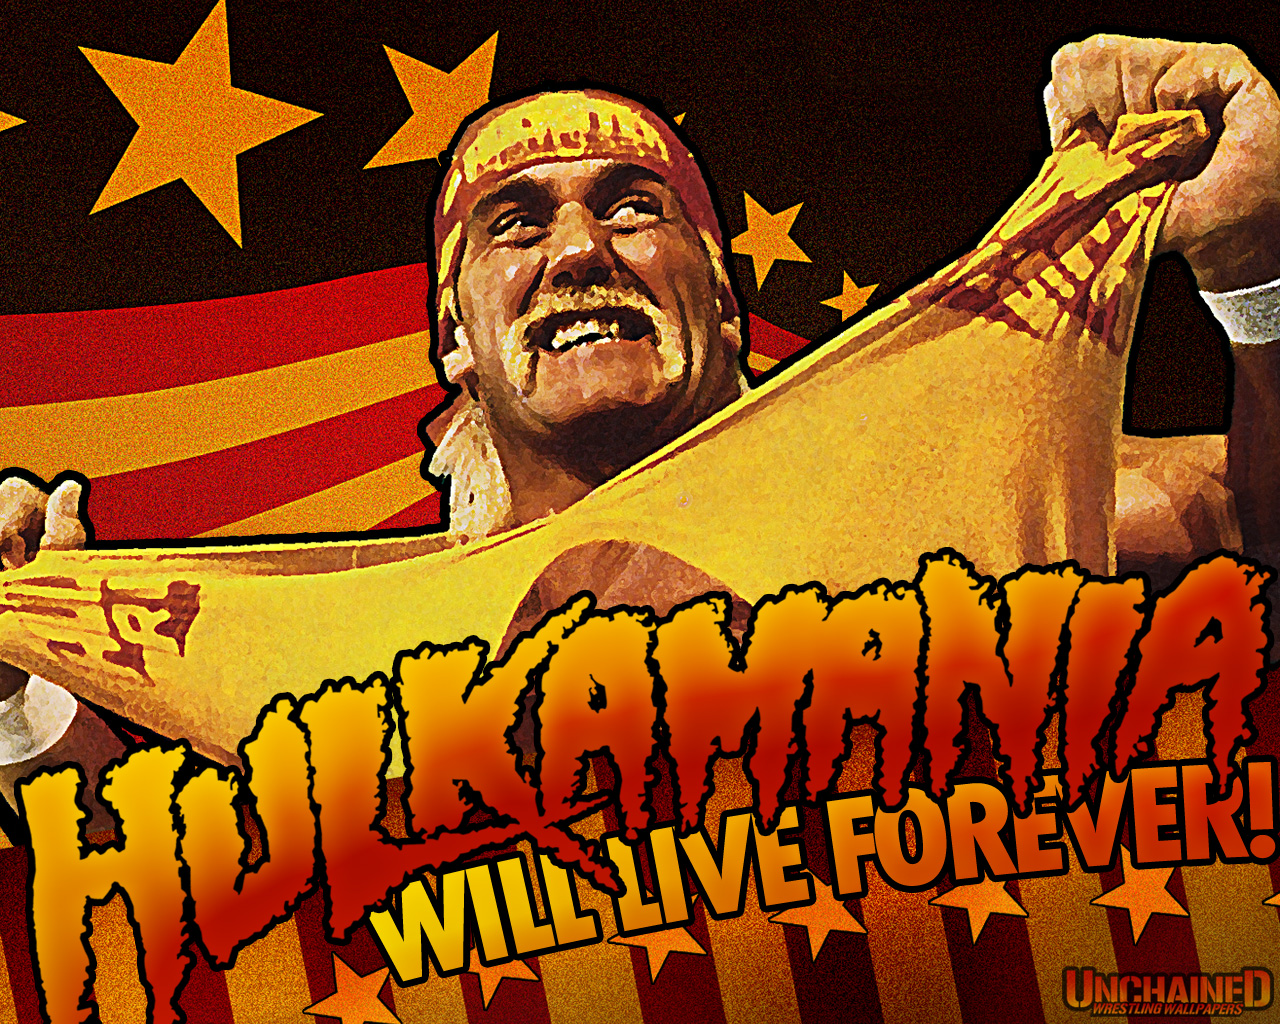 Hogan Hulk Wwe Hulk Hogan Wallpapers Hogan Pictures Wwe